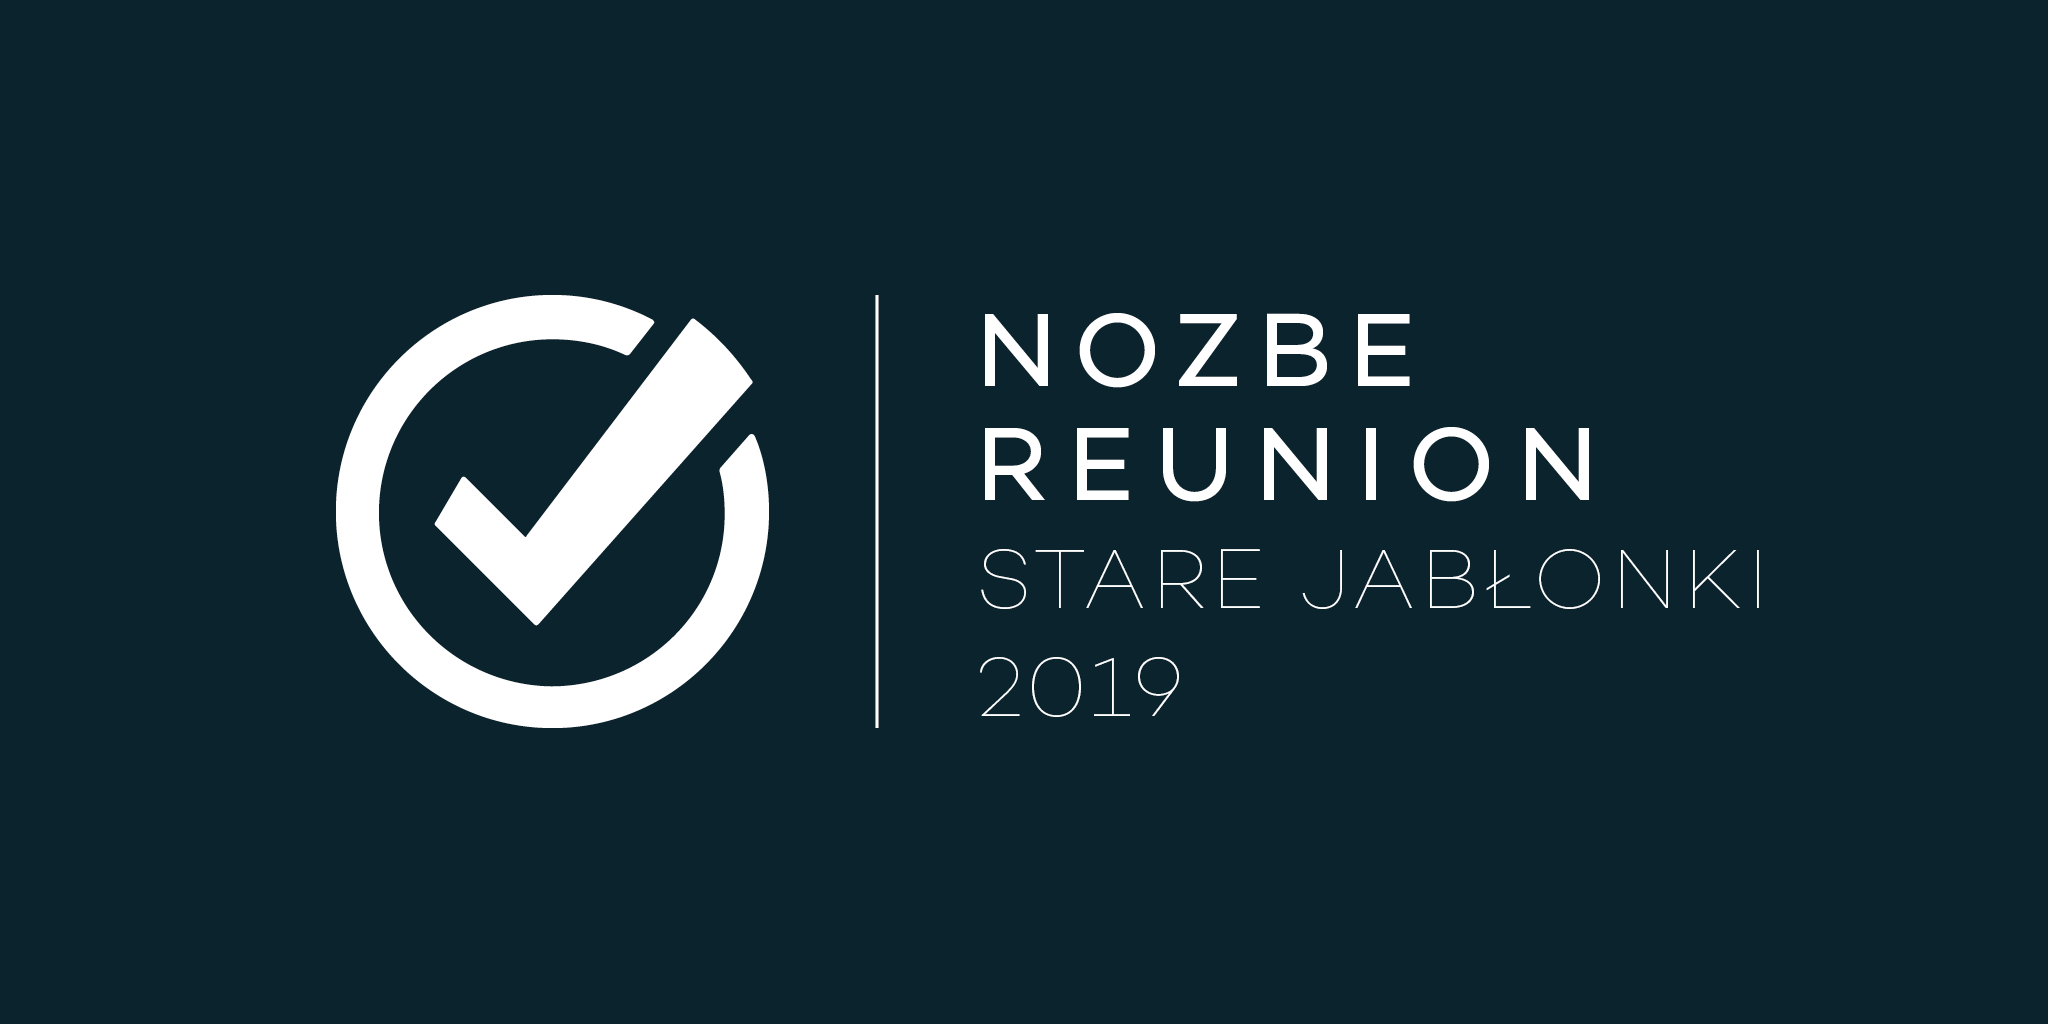 Nozbe Reunion - Masuria (April 08-12, 2019) - customer support slowdown